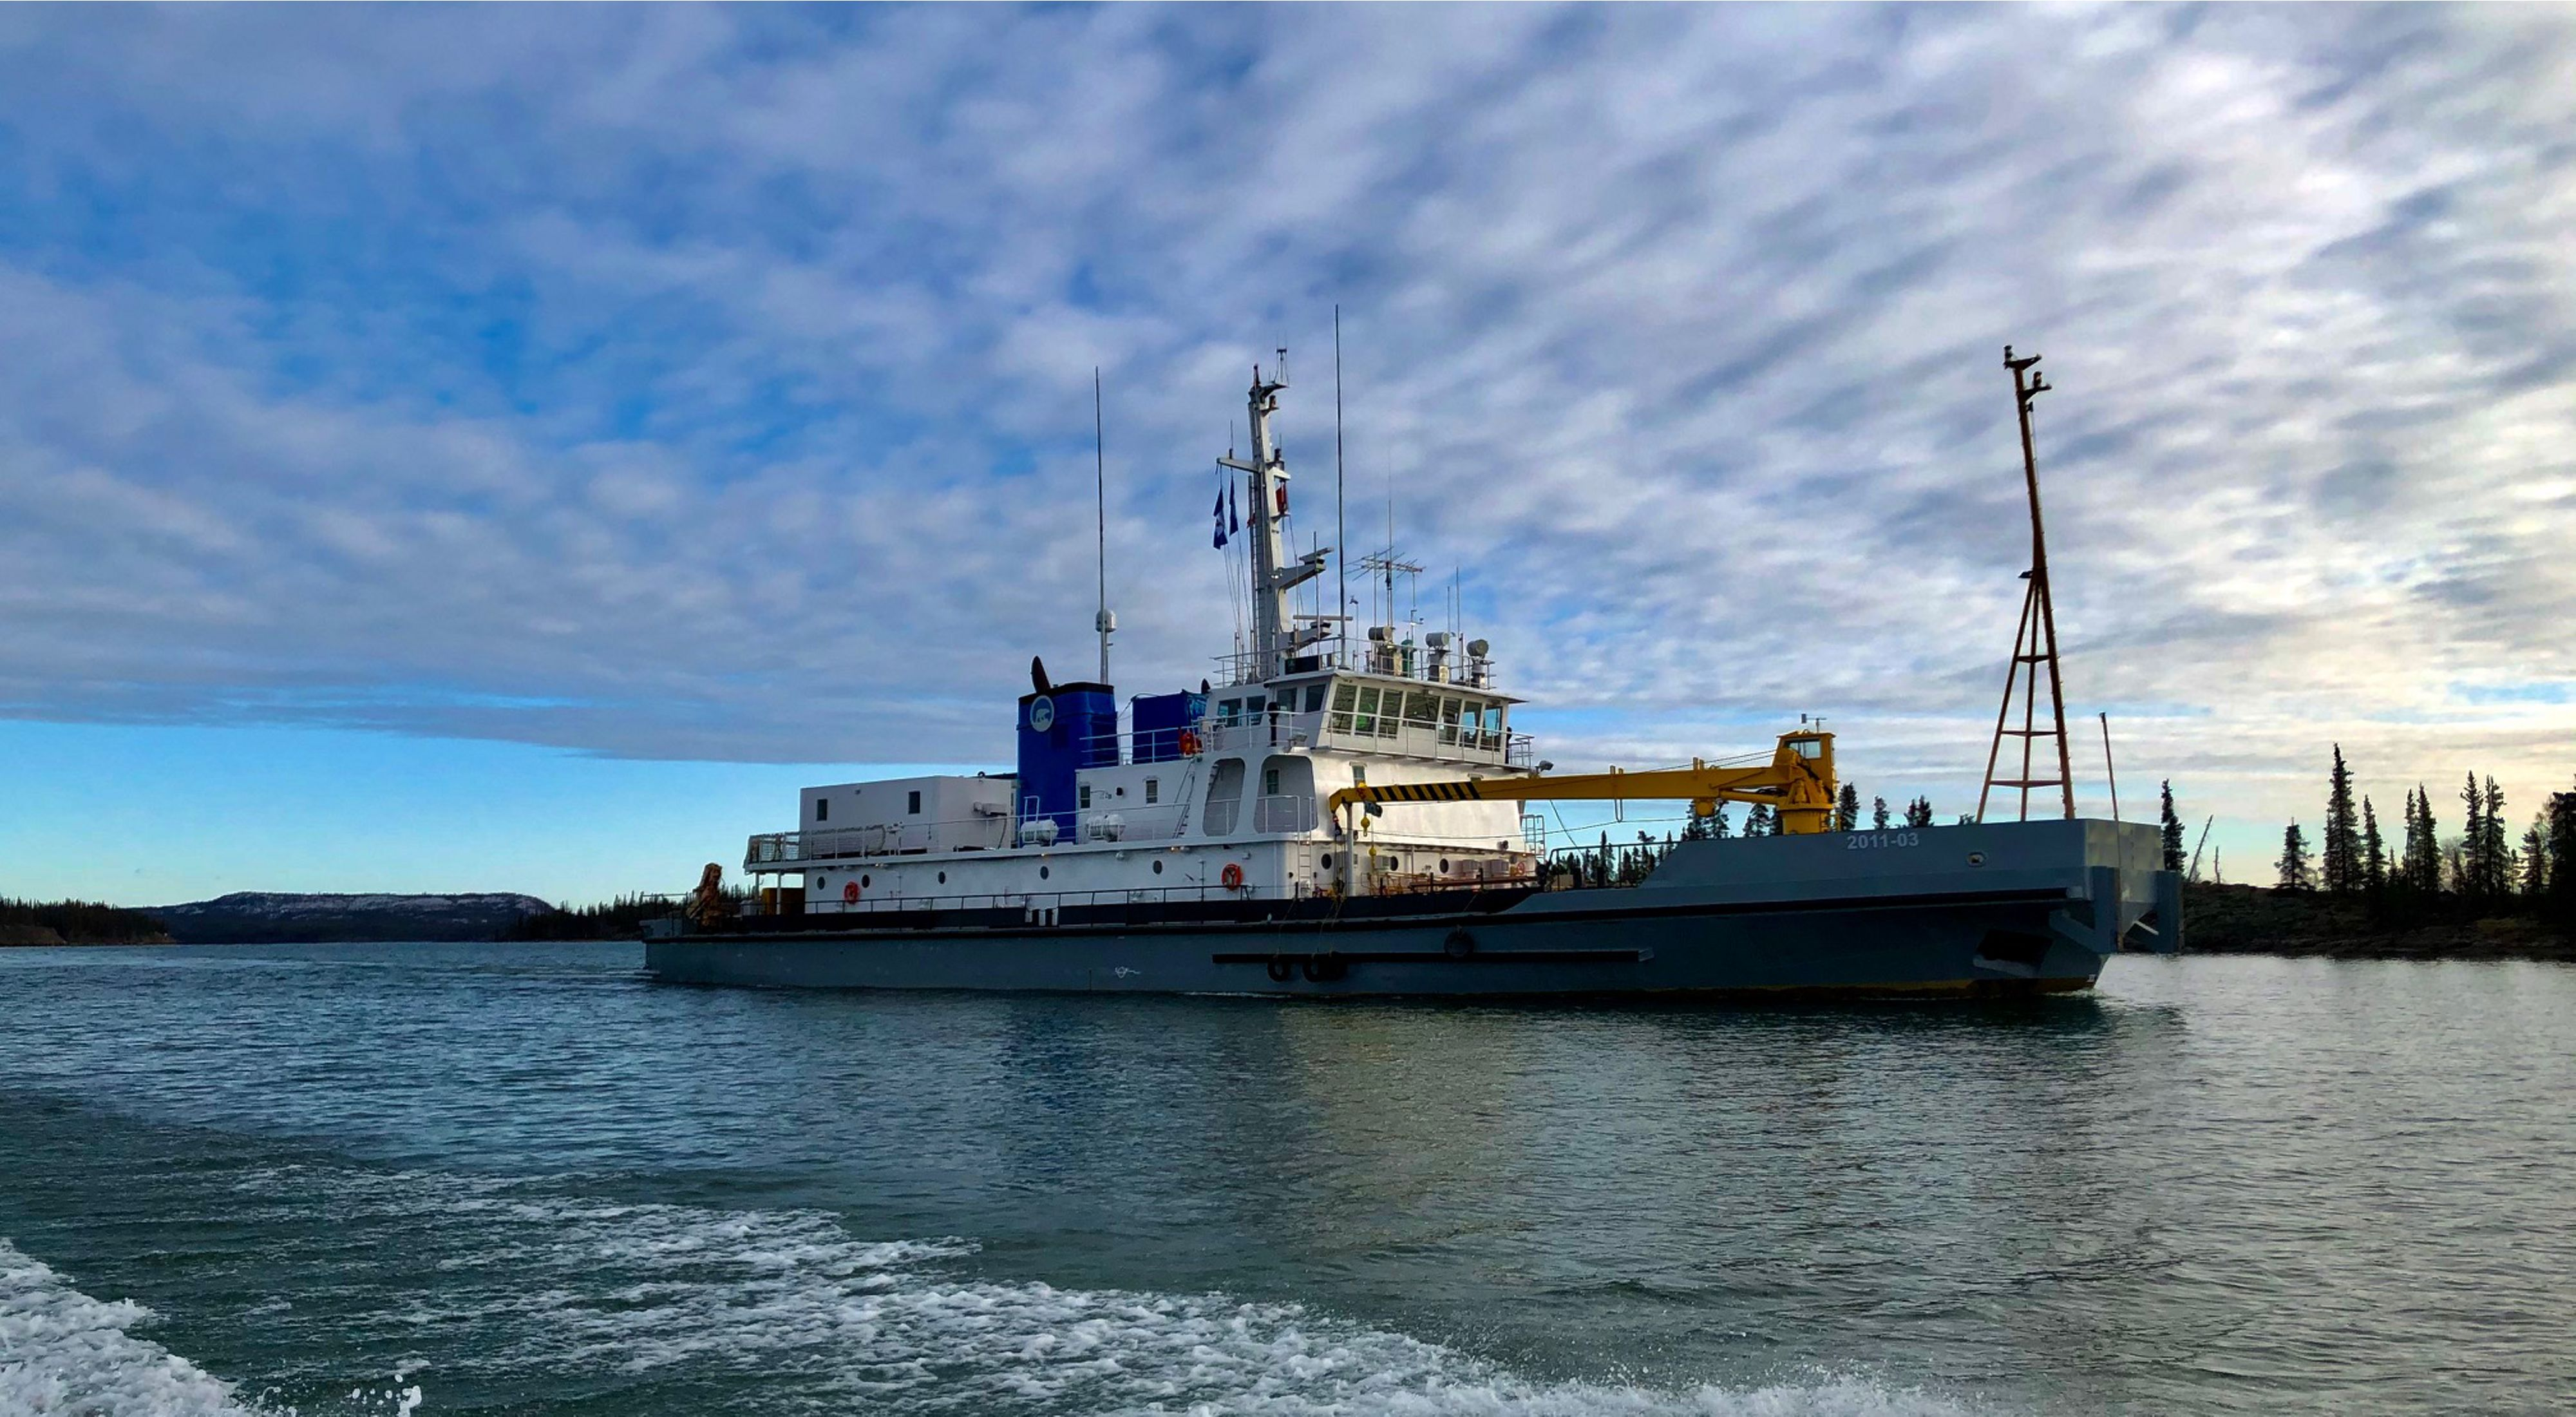 In October 2019, a research vessel set sail on Tu Nedhé (also known as Great Slave Lake) with a crew that included young people from the nearby Łutsël K'é Dene First Nation.